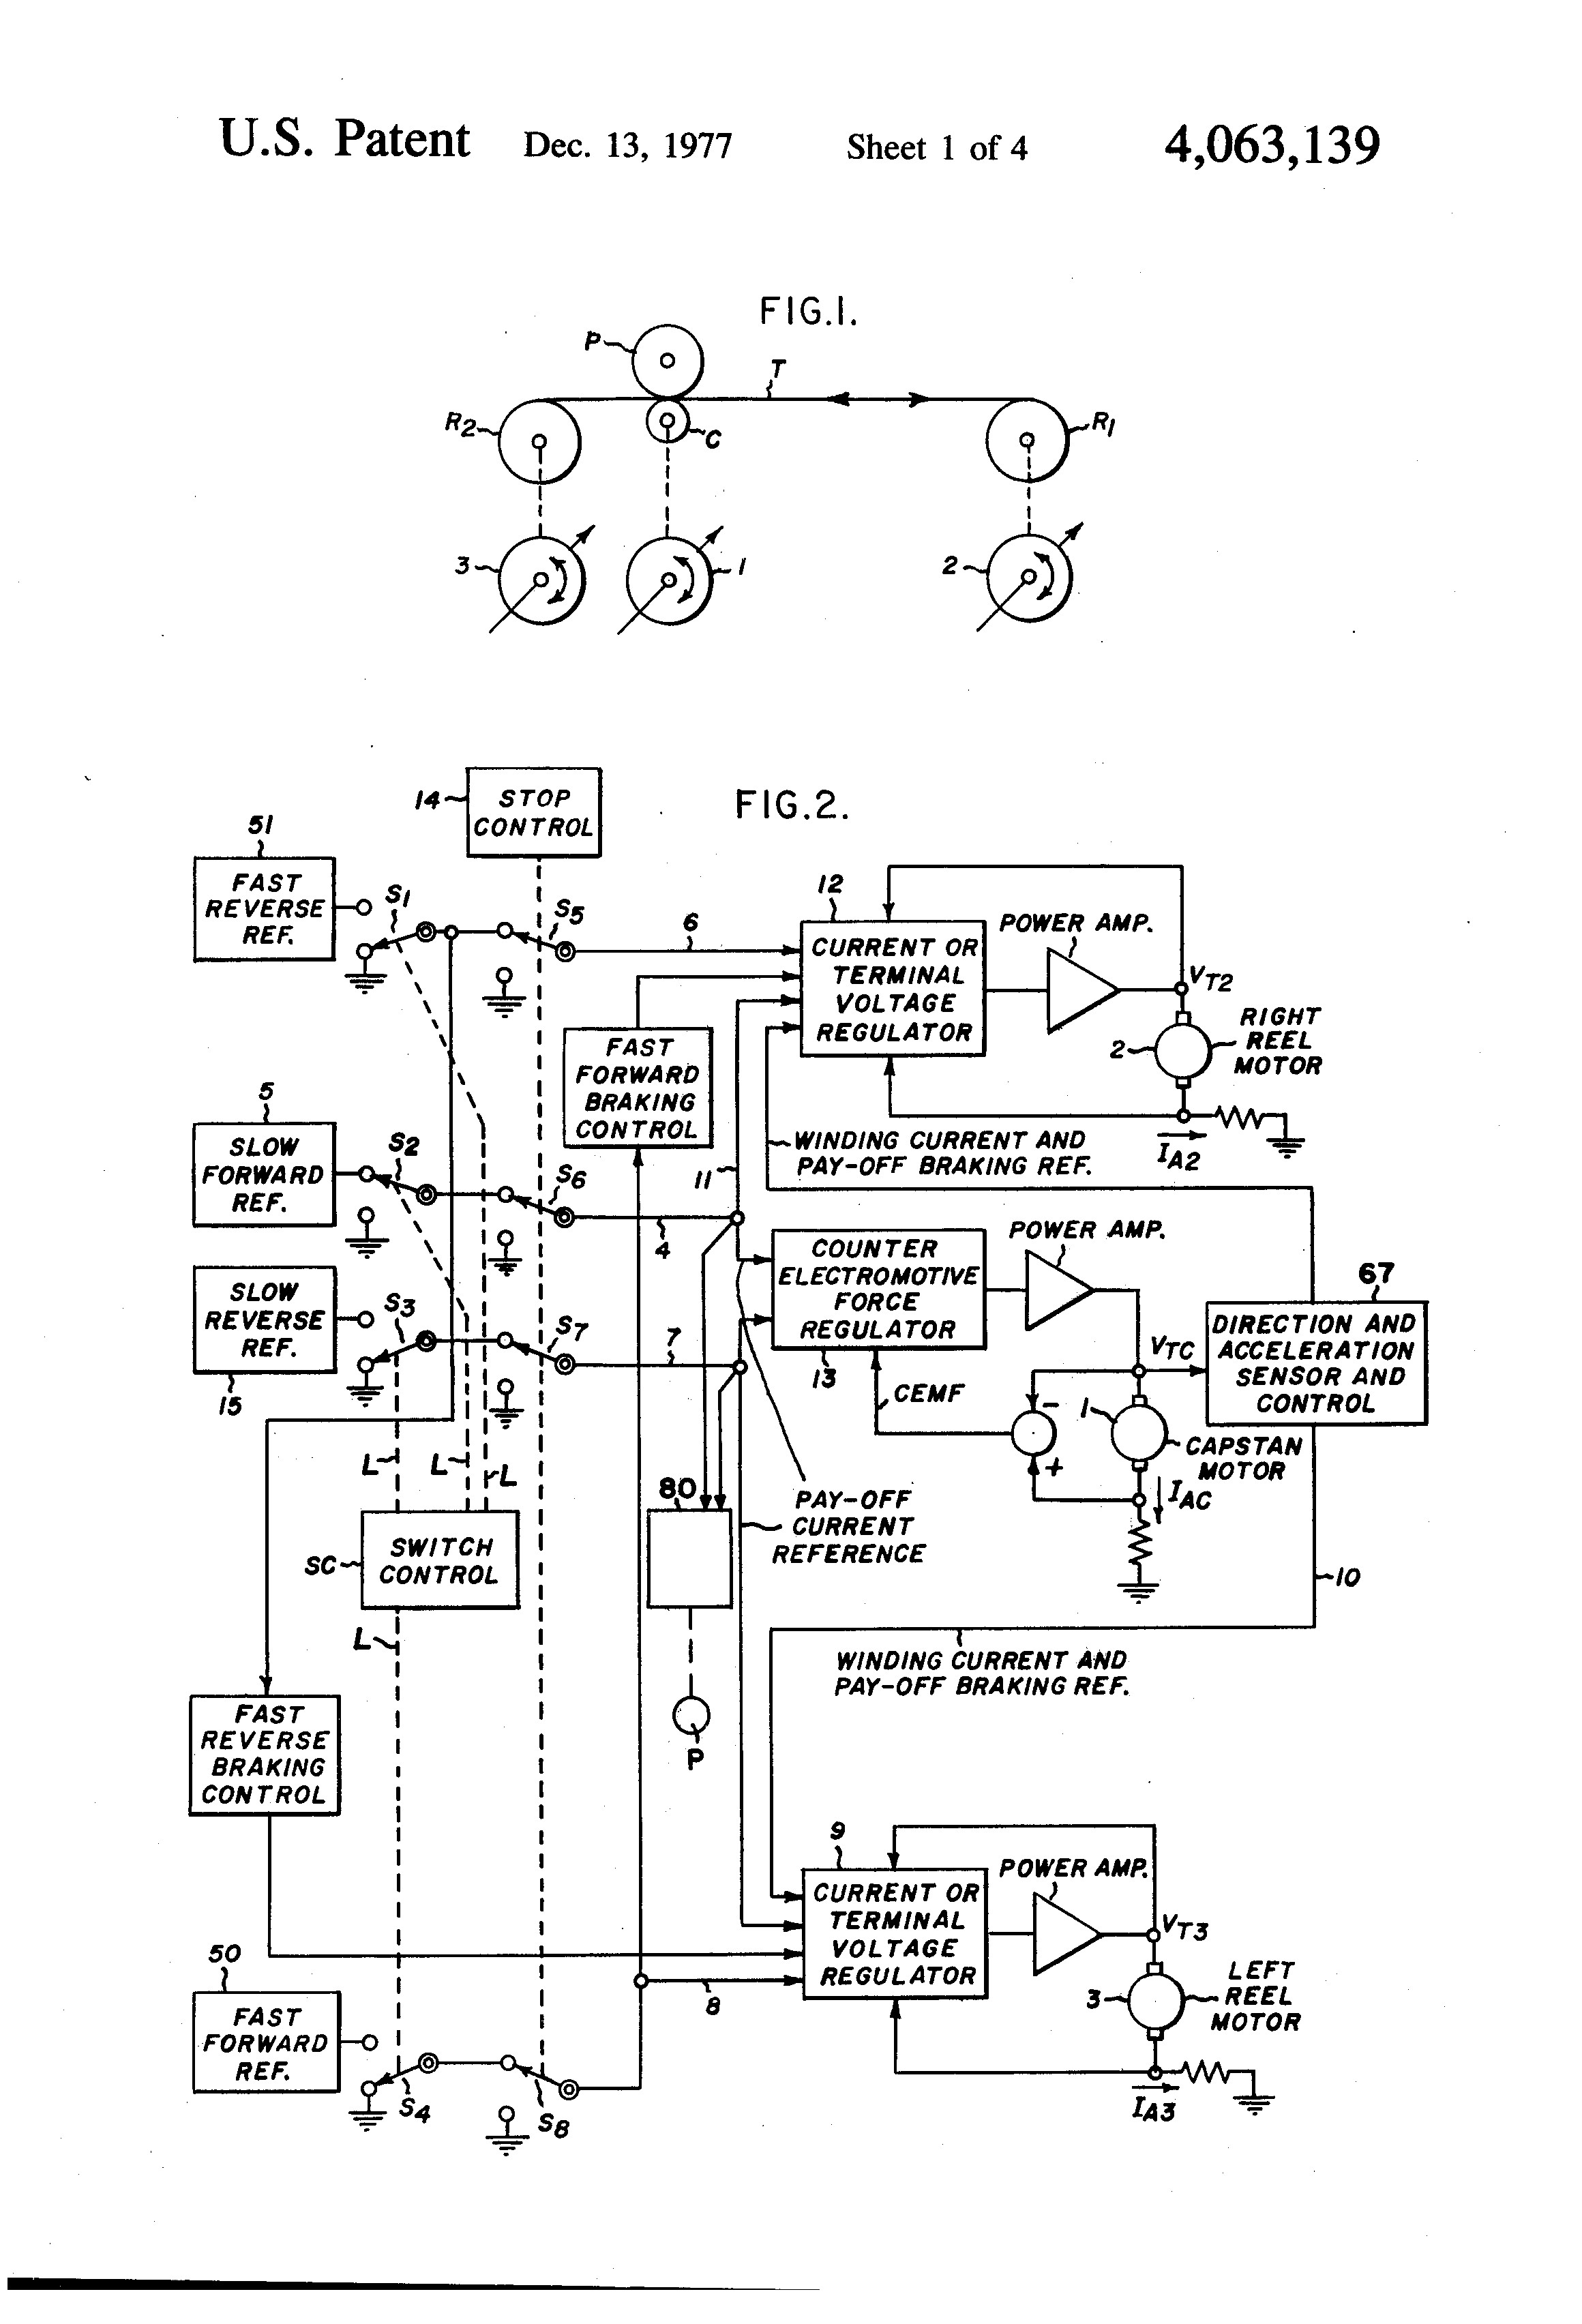 Schematic Of Rc Electric Motor Circuit Us A Tape Drive Motor Control Circuit Google Patents Of Schematic Of Rc Electric Motor Circuit